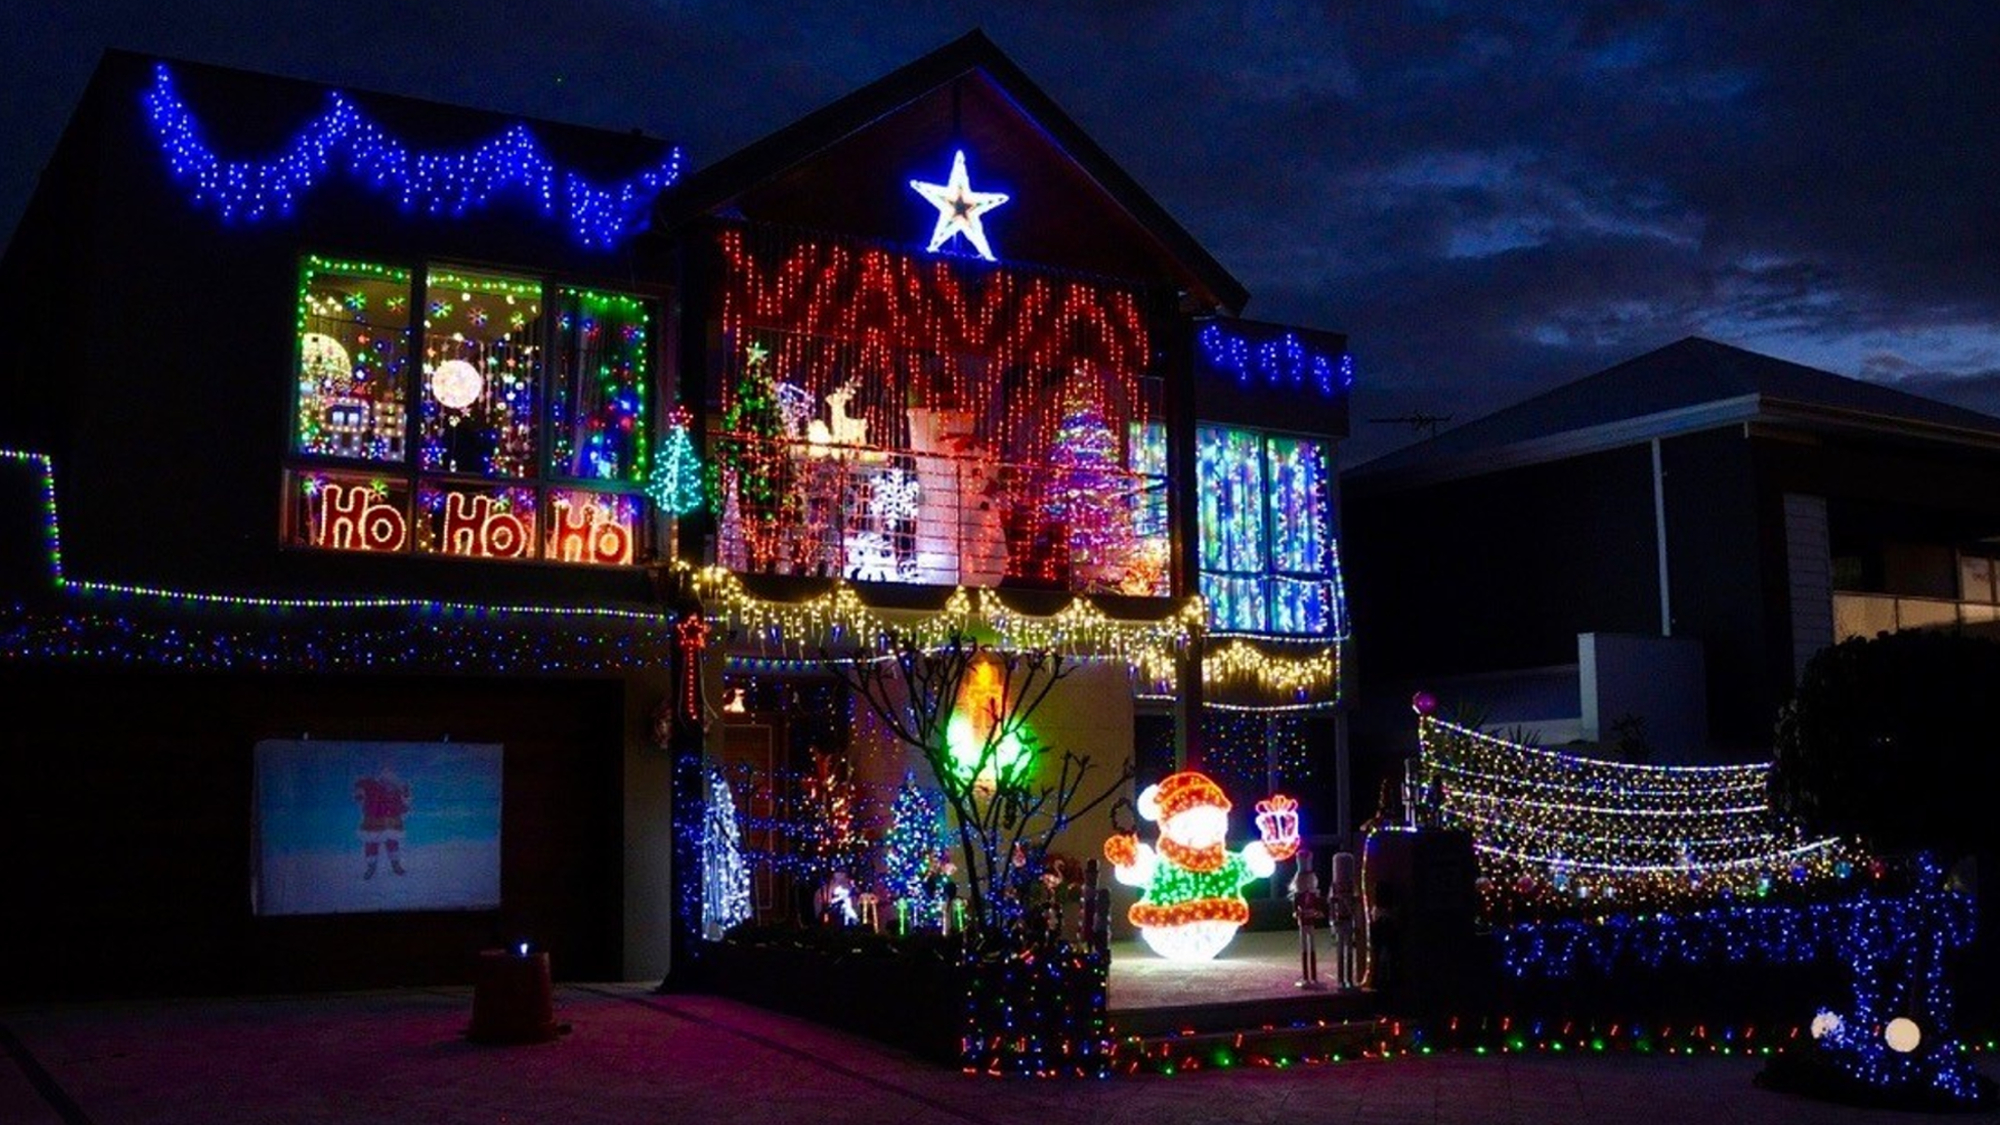 Competition - Festival of Lights finalist